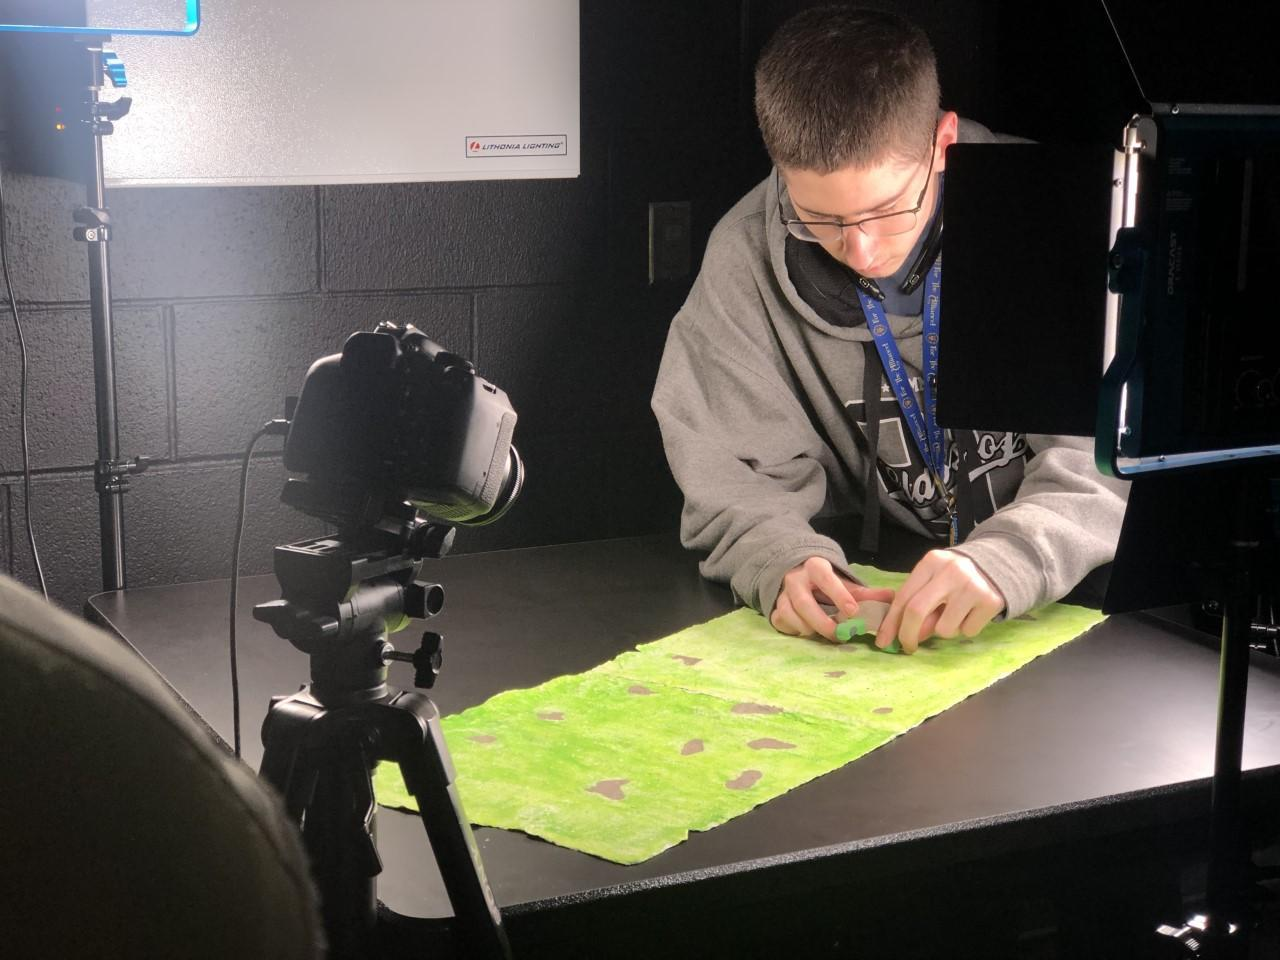 a/v student working on project